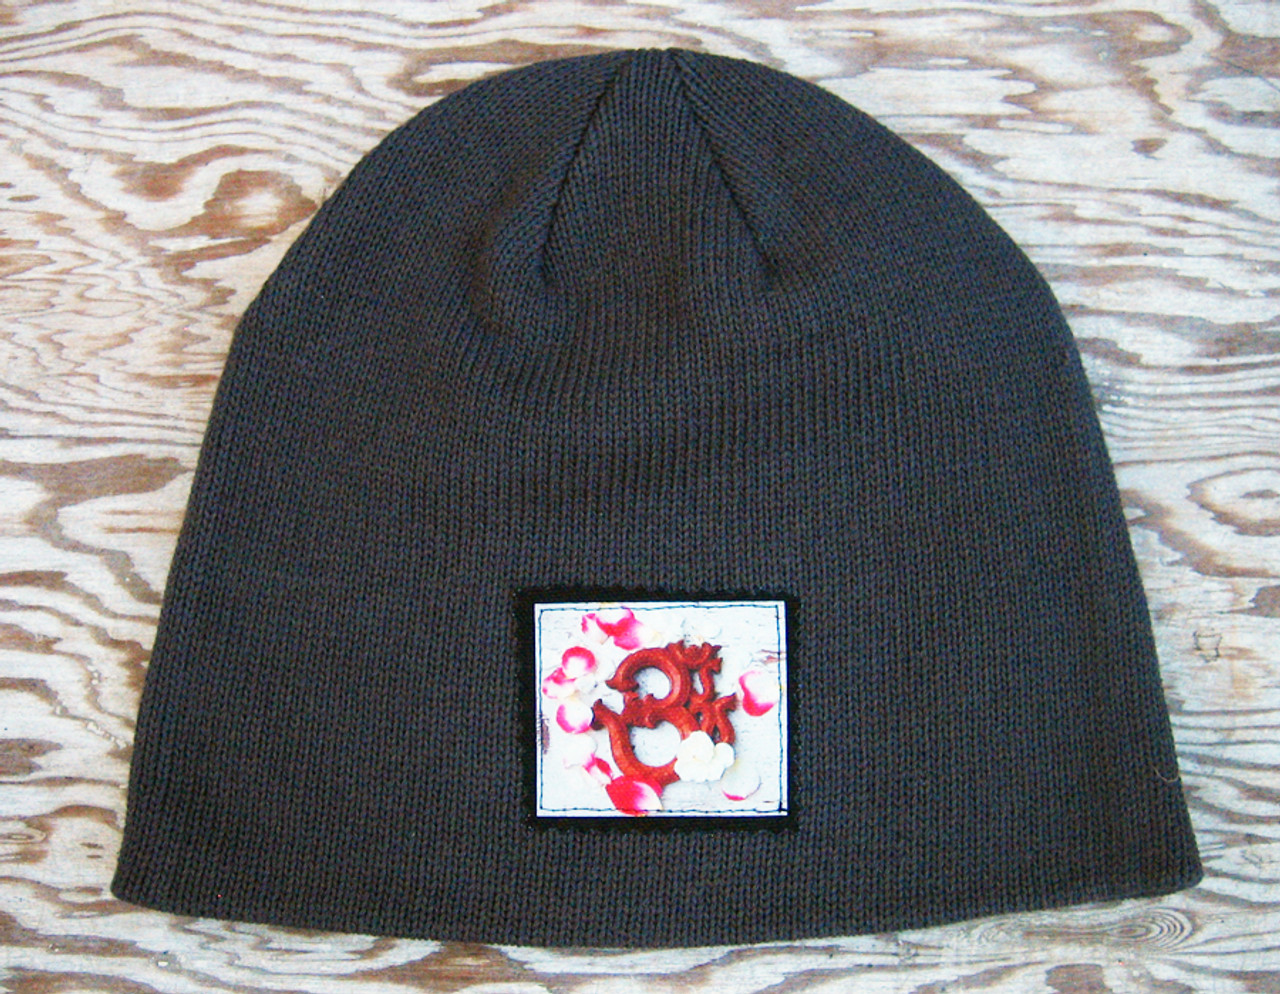 Om with rose petals Organic Cotton Beanie Hat - Dharma Love 7ee222b7d38